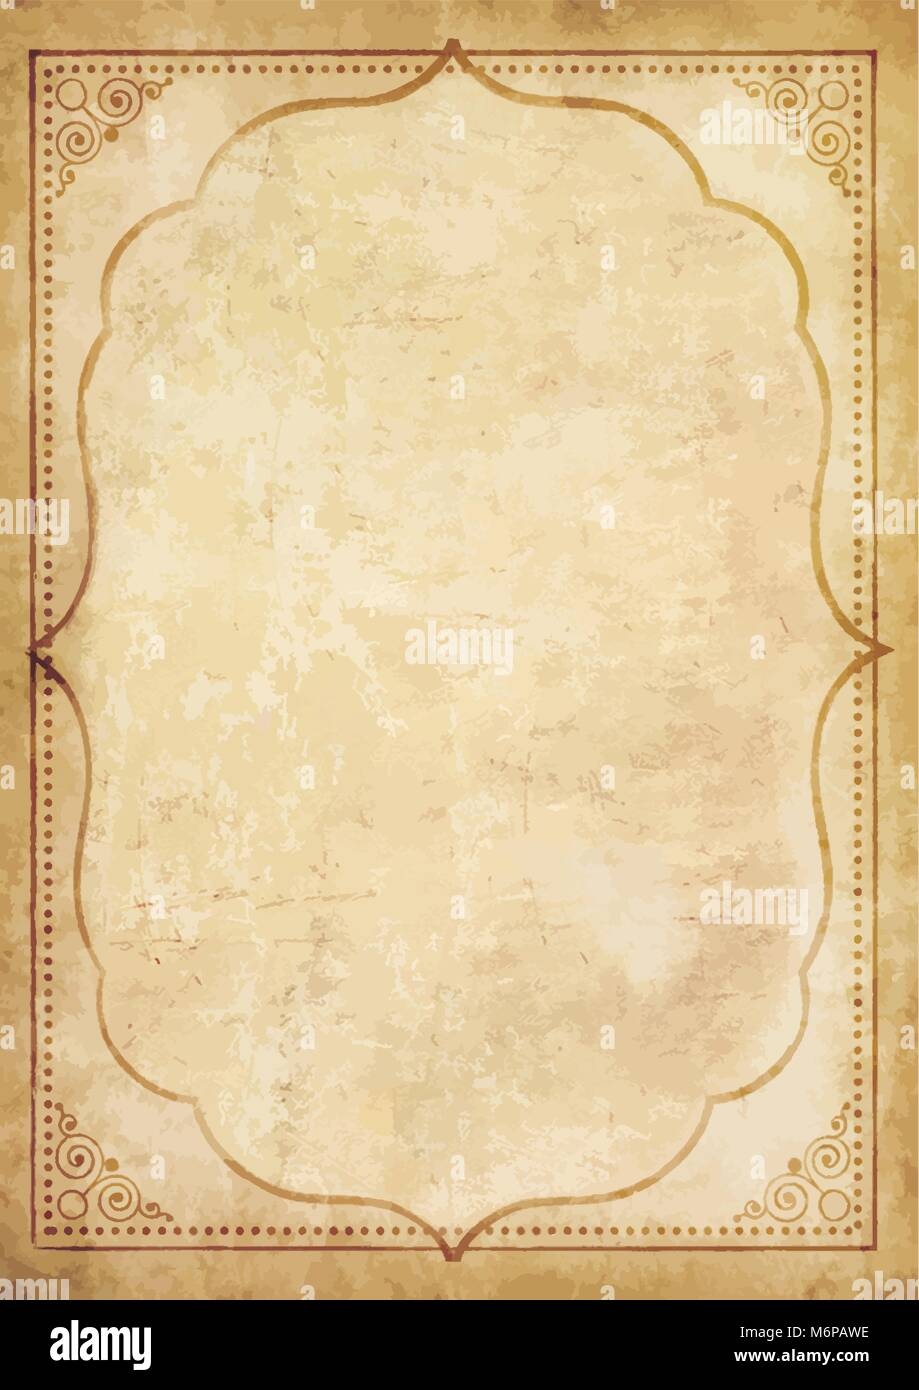 Old grungy vintage paper blank with curly oriental frame ornament. Worn papyrus template for mail, aged letter paper - Stock Image